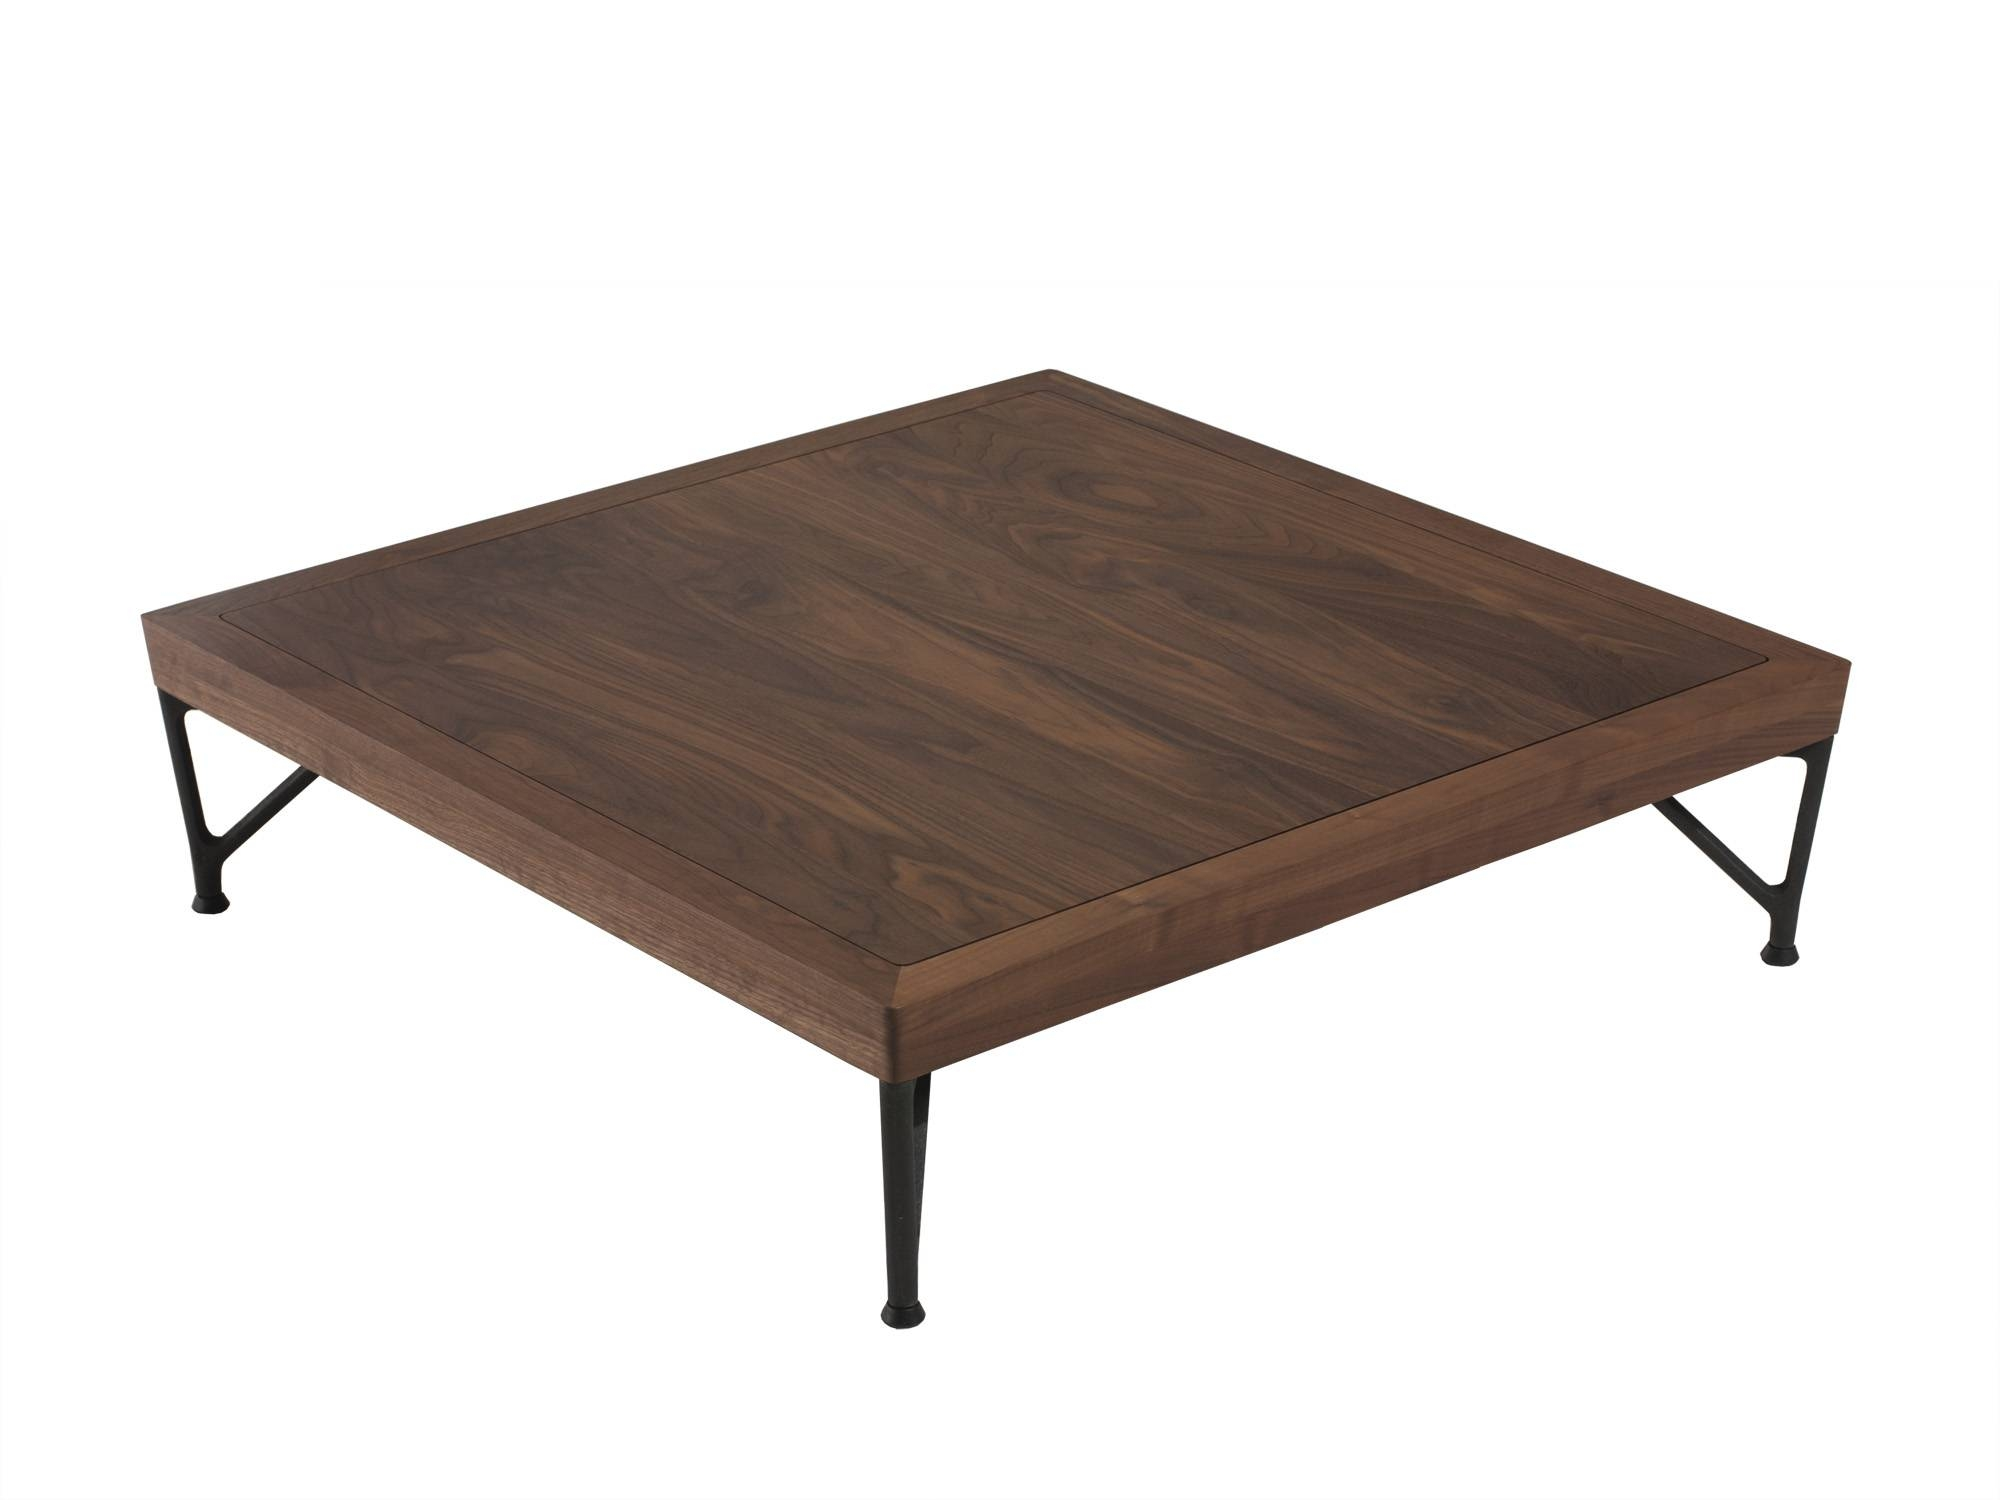 Simple Coffee Table Of Iron Furnitureteams Com Extra Large Low intended for Extra Large Low Coffee Tables (Image 22 of 30)